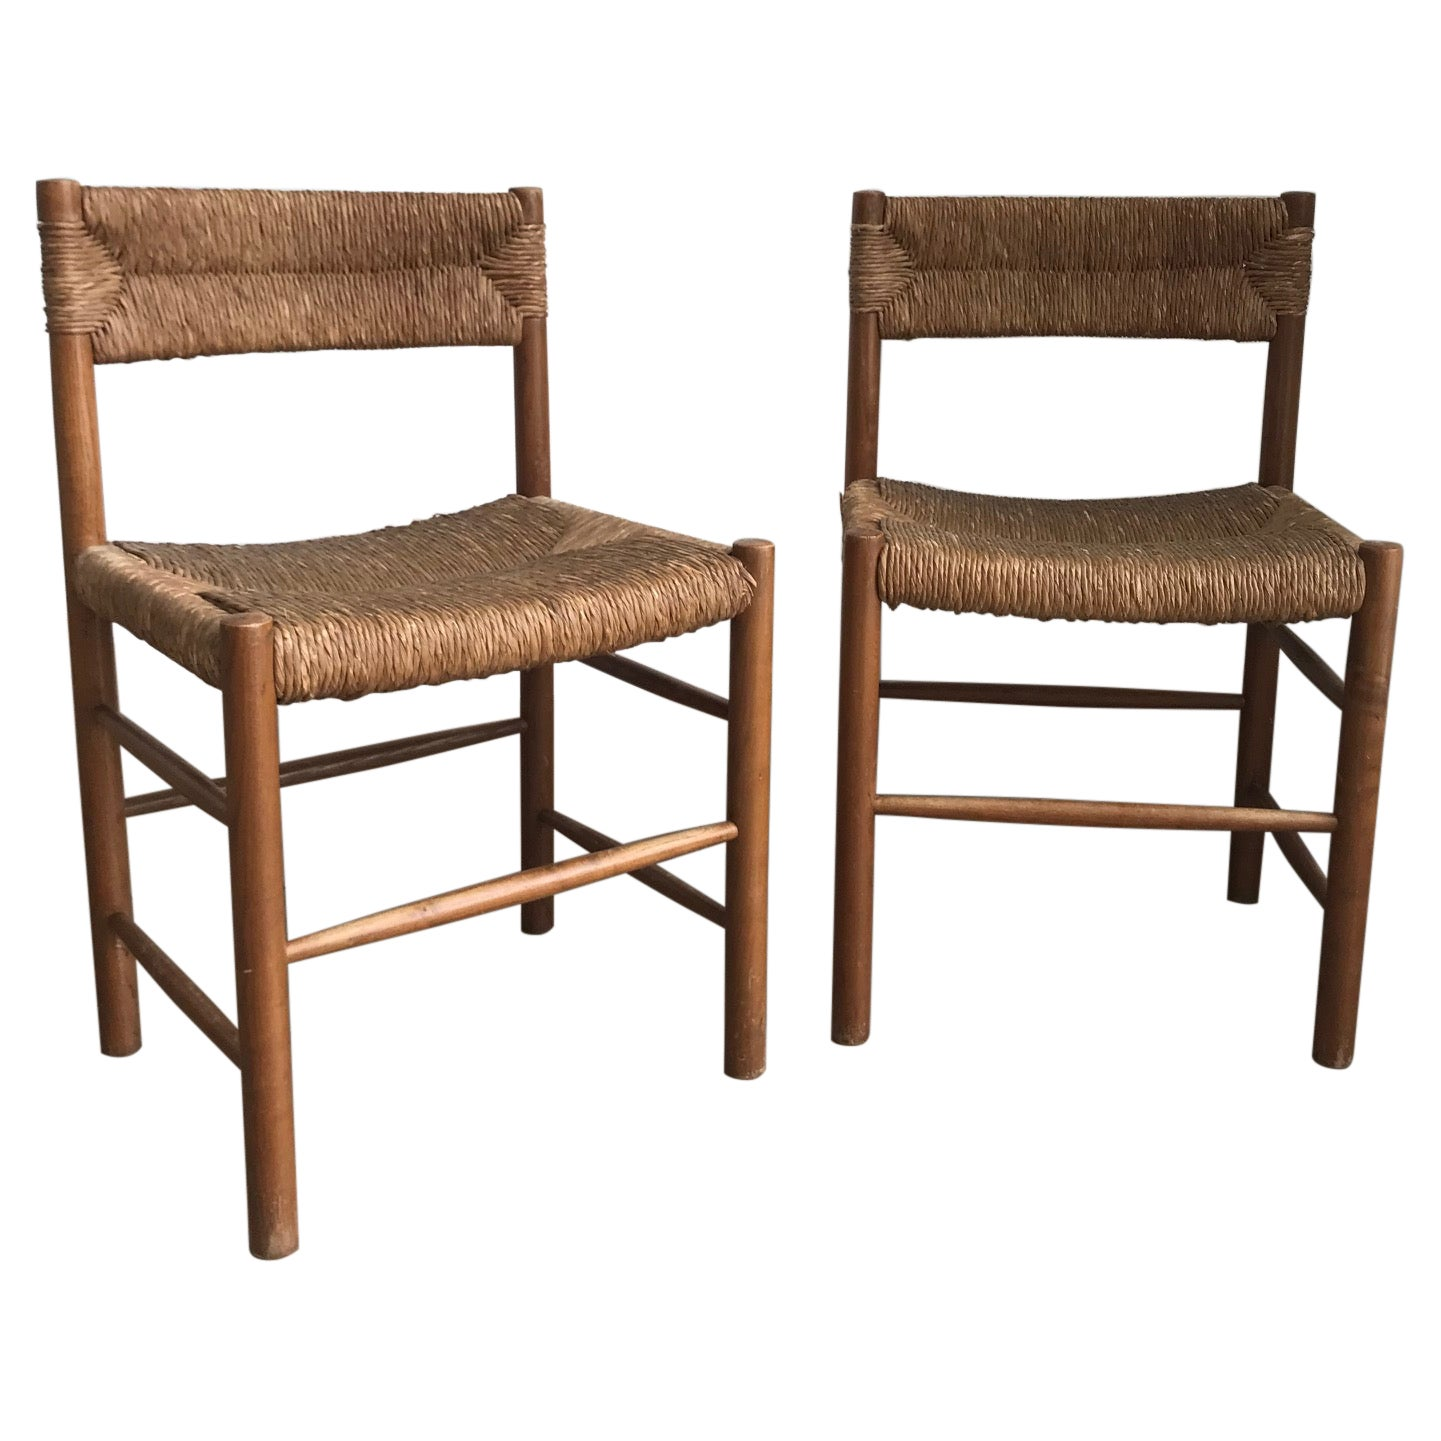 """Pair of """"Dordogne"""" Chairs by Charlotte Perriand for Sentou, 1950s"""